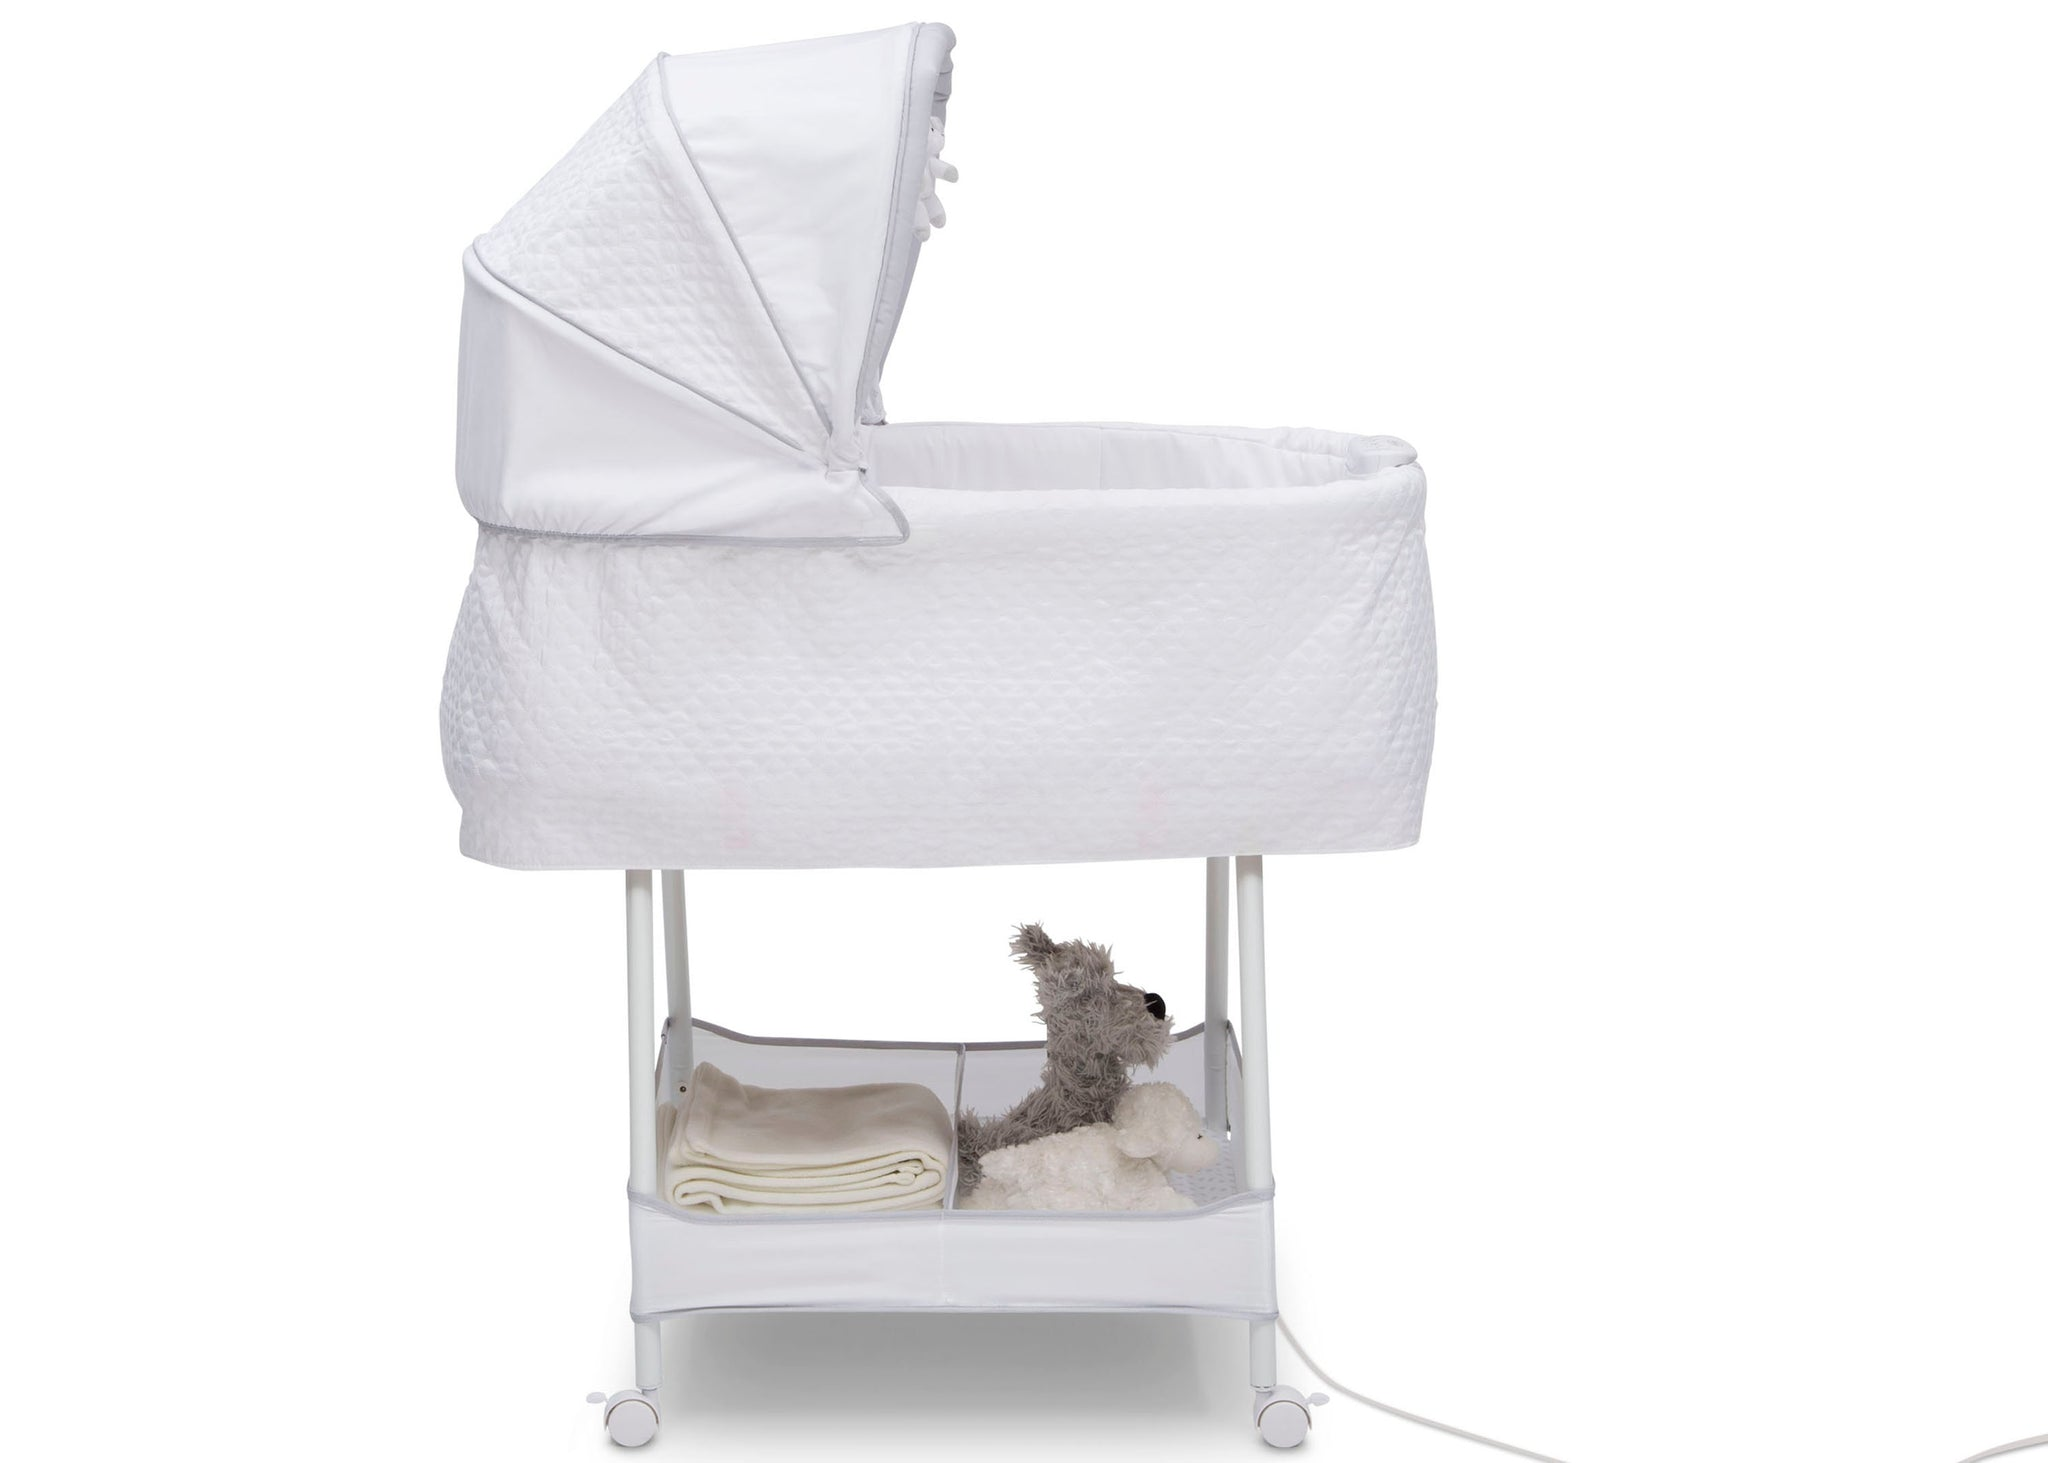 Simmons Kids Odyssey (2020) Silent Auto Gliding Elite Bassinet (701405) Side Profile, a5a